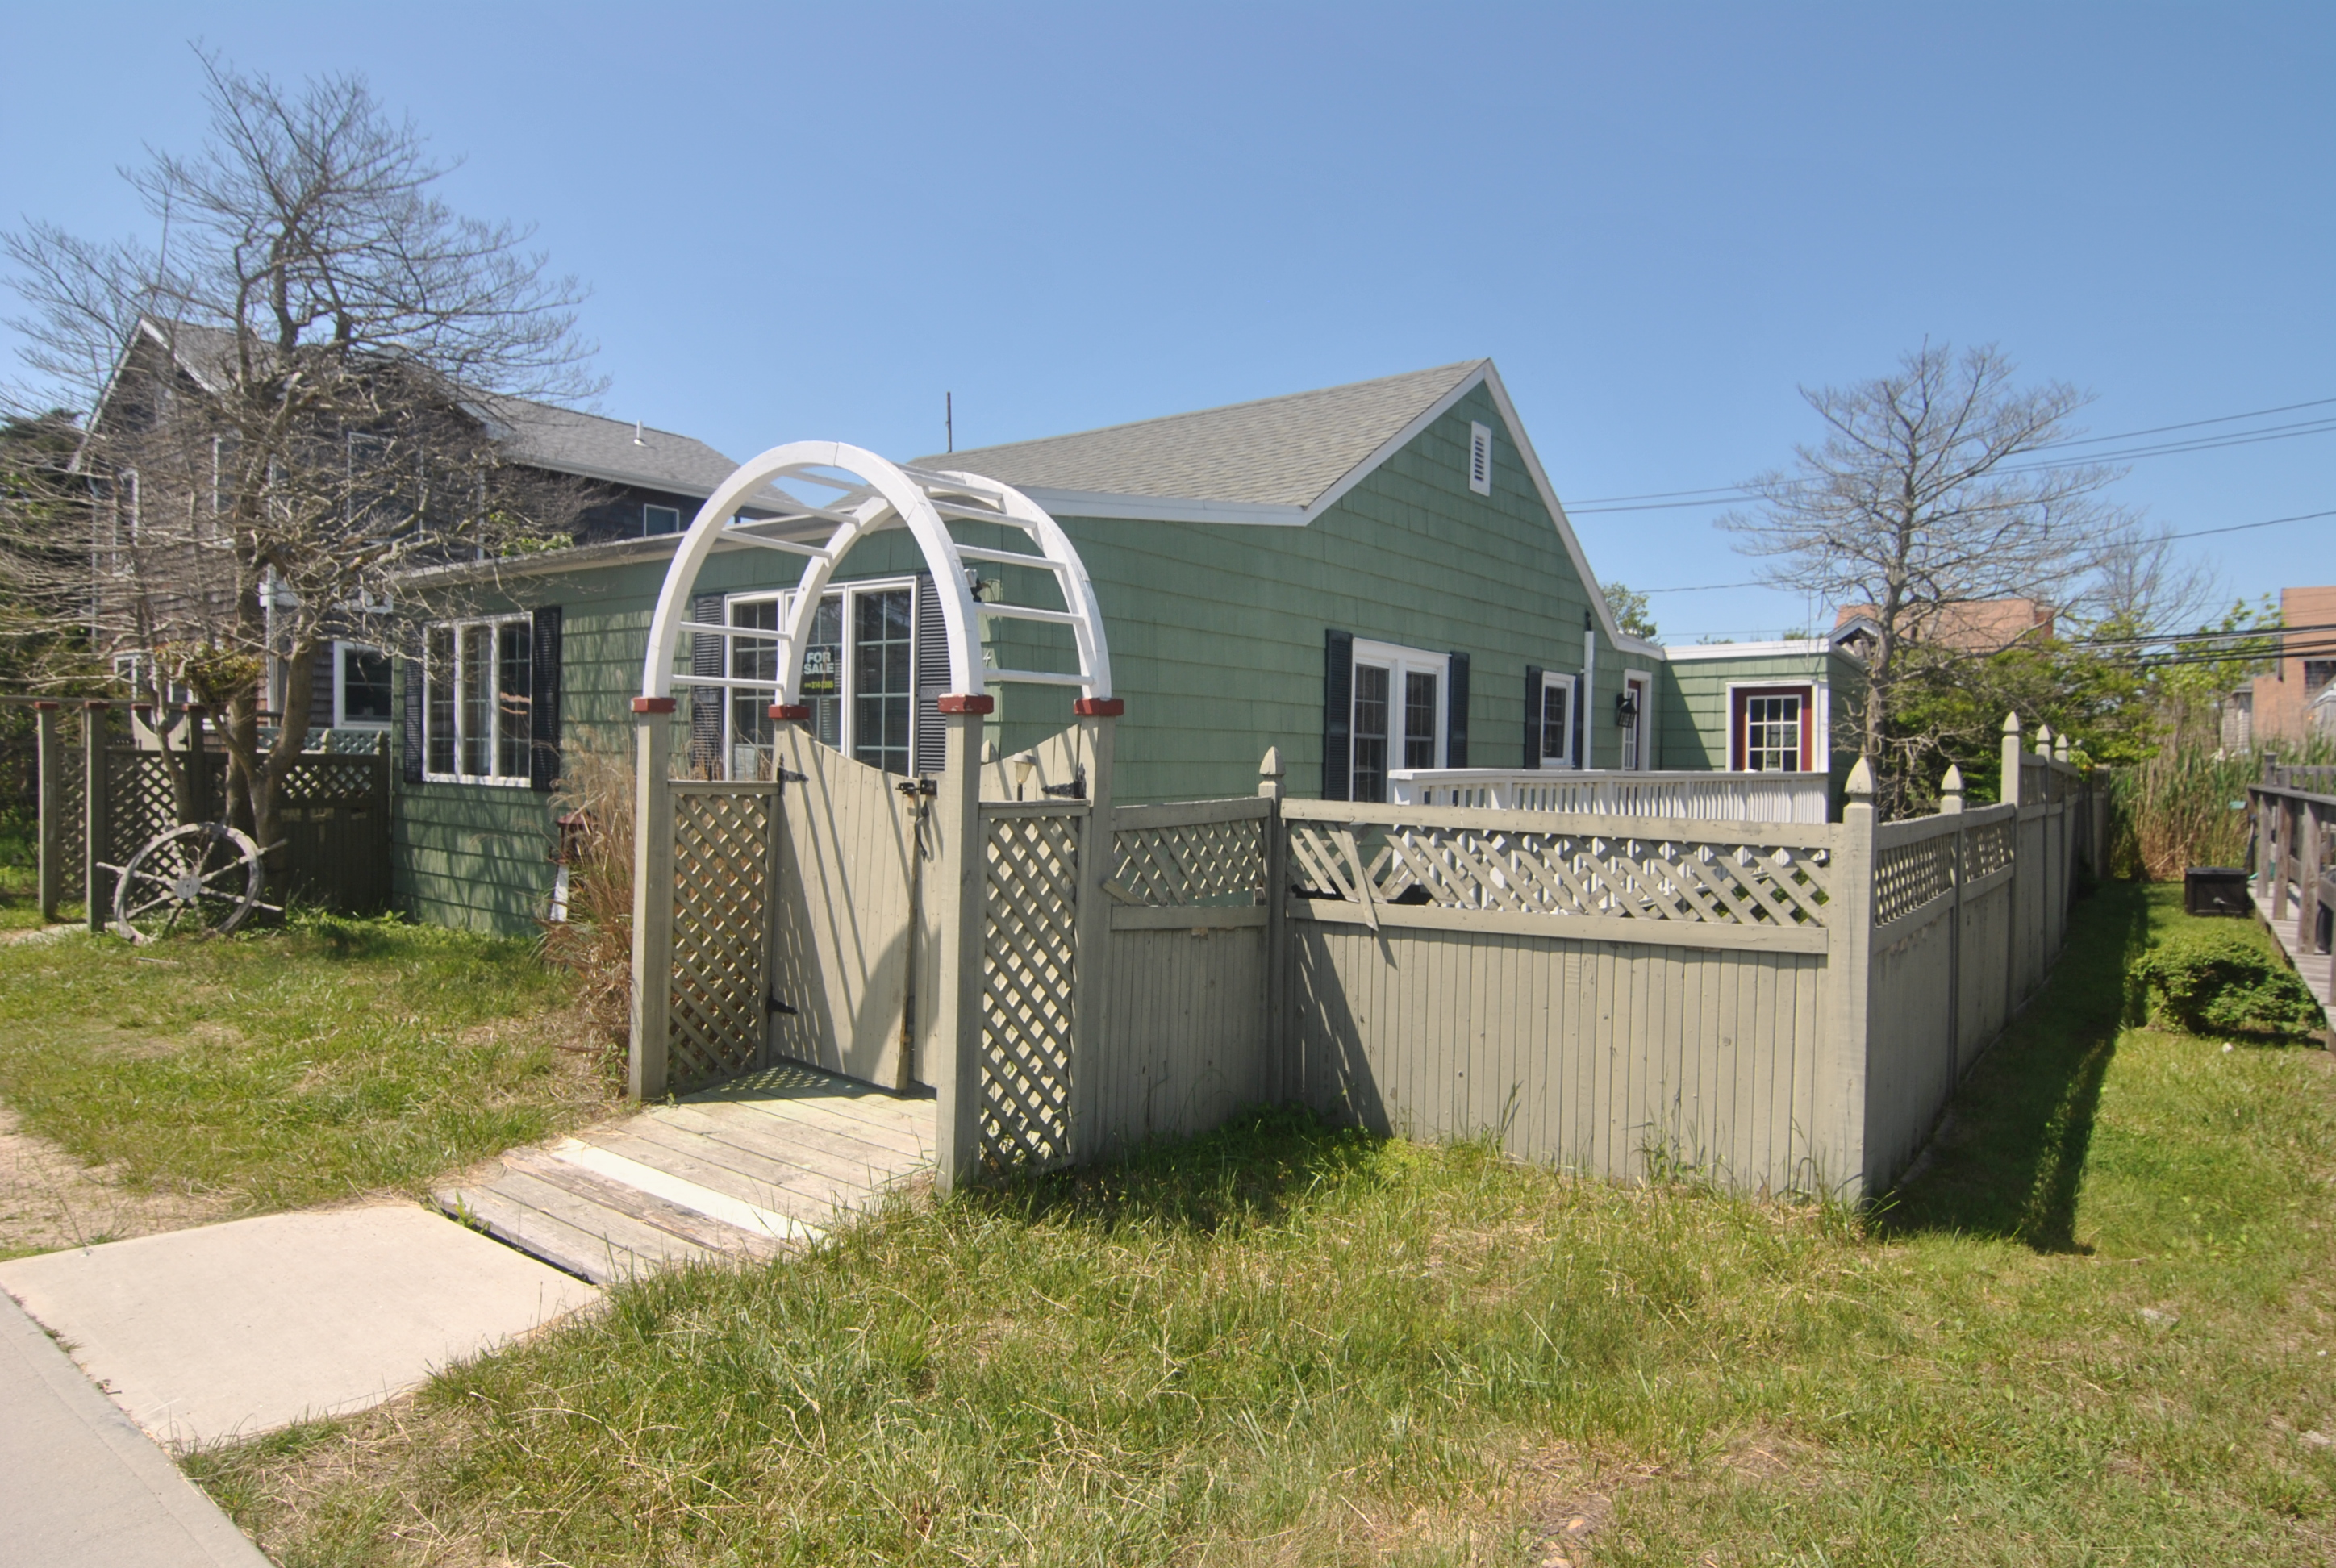 This charming home is all updated. 4 bedrooms and 1.5 baths.  Open living and dining area. Sunny rear deck with outdoor shower and hot tub.  Quiet and convenient Ocean Beach location. Central air conditioning.  Great summer home or rental investment.  Seller financing available with 10% down payment!